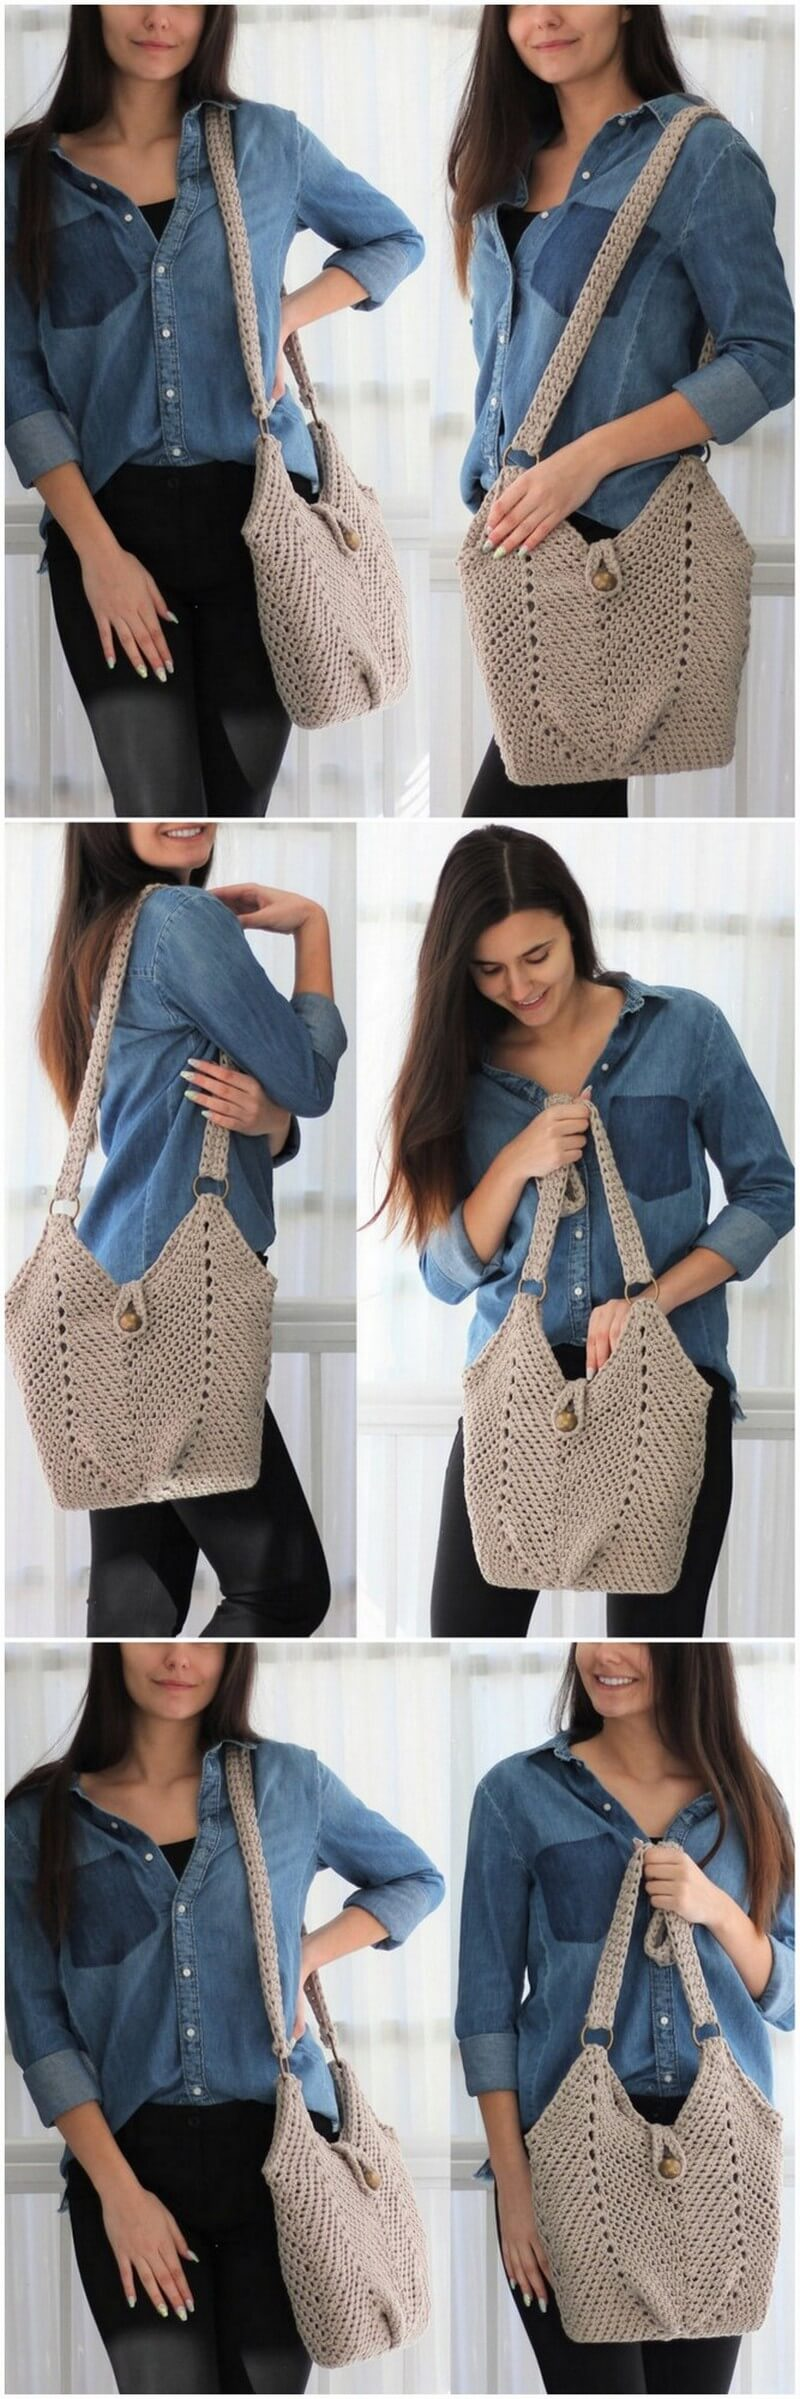 Crochet Bag Pattern (64)